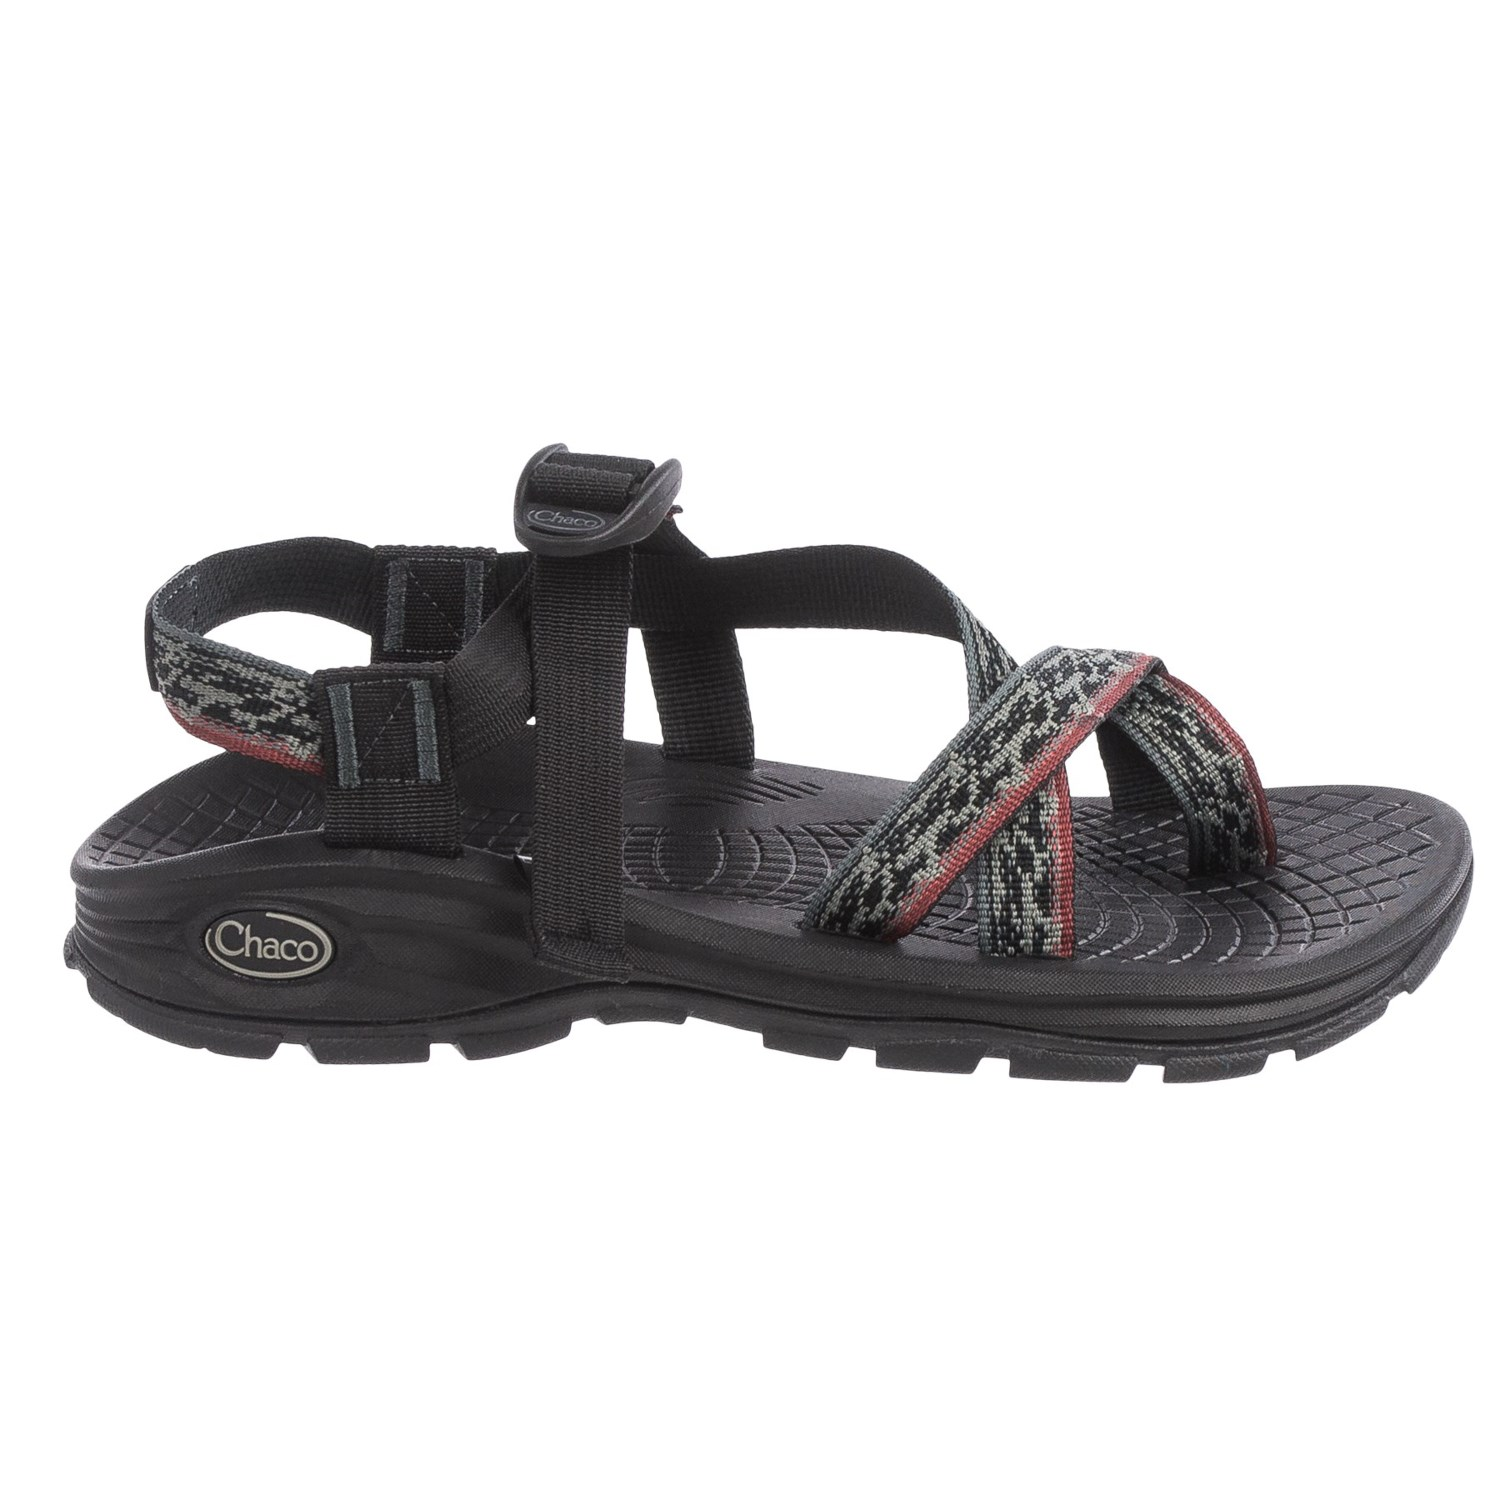 6971dfc687f0 Chaco Z Volv 2 Sport Sandals (For Men) - Save 30%